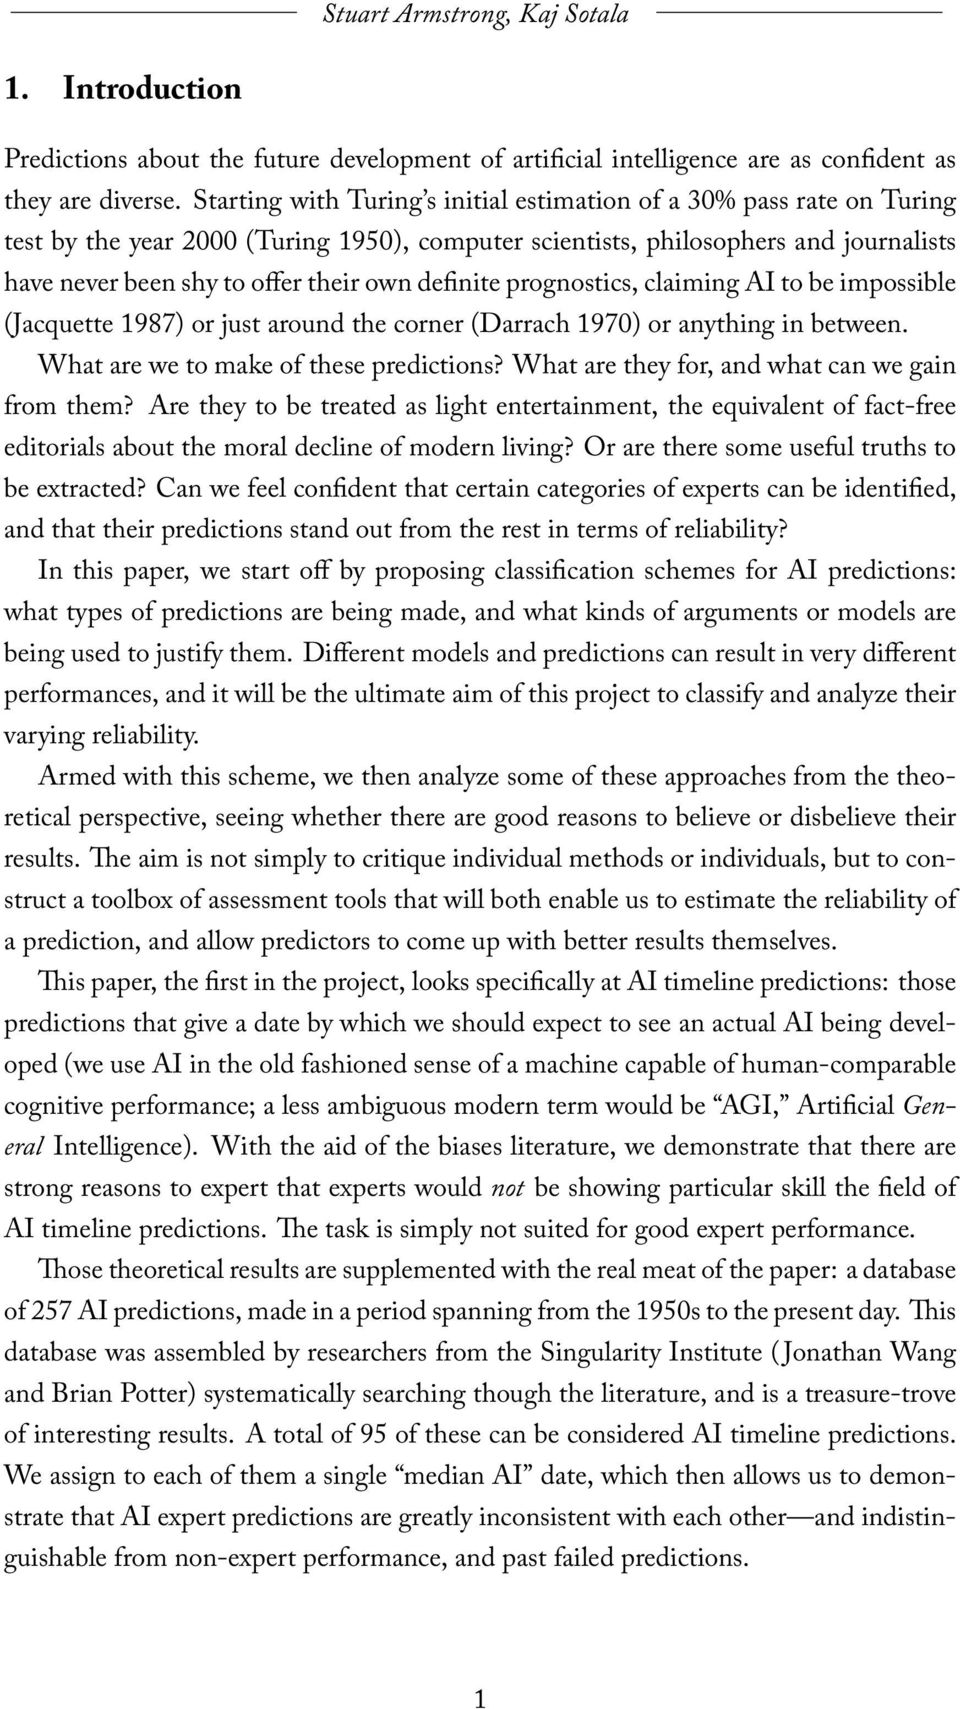 definite prognostics, claiming AI to be impossible (Jacquette 1987) or just around the corner (Darrach 1970) or anything in between. What are we to make of these predictions?